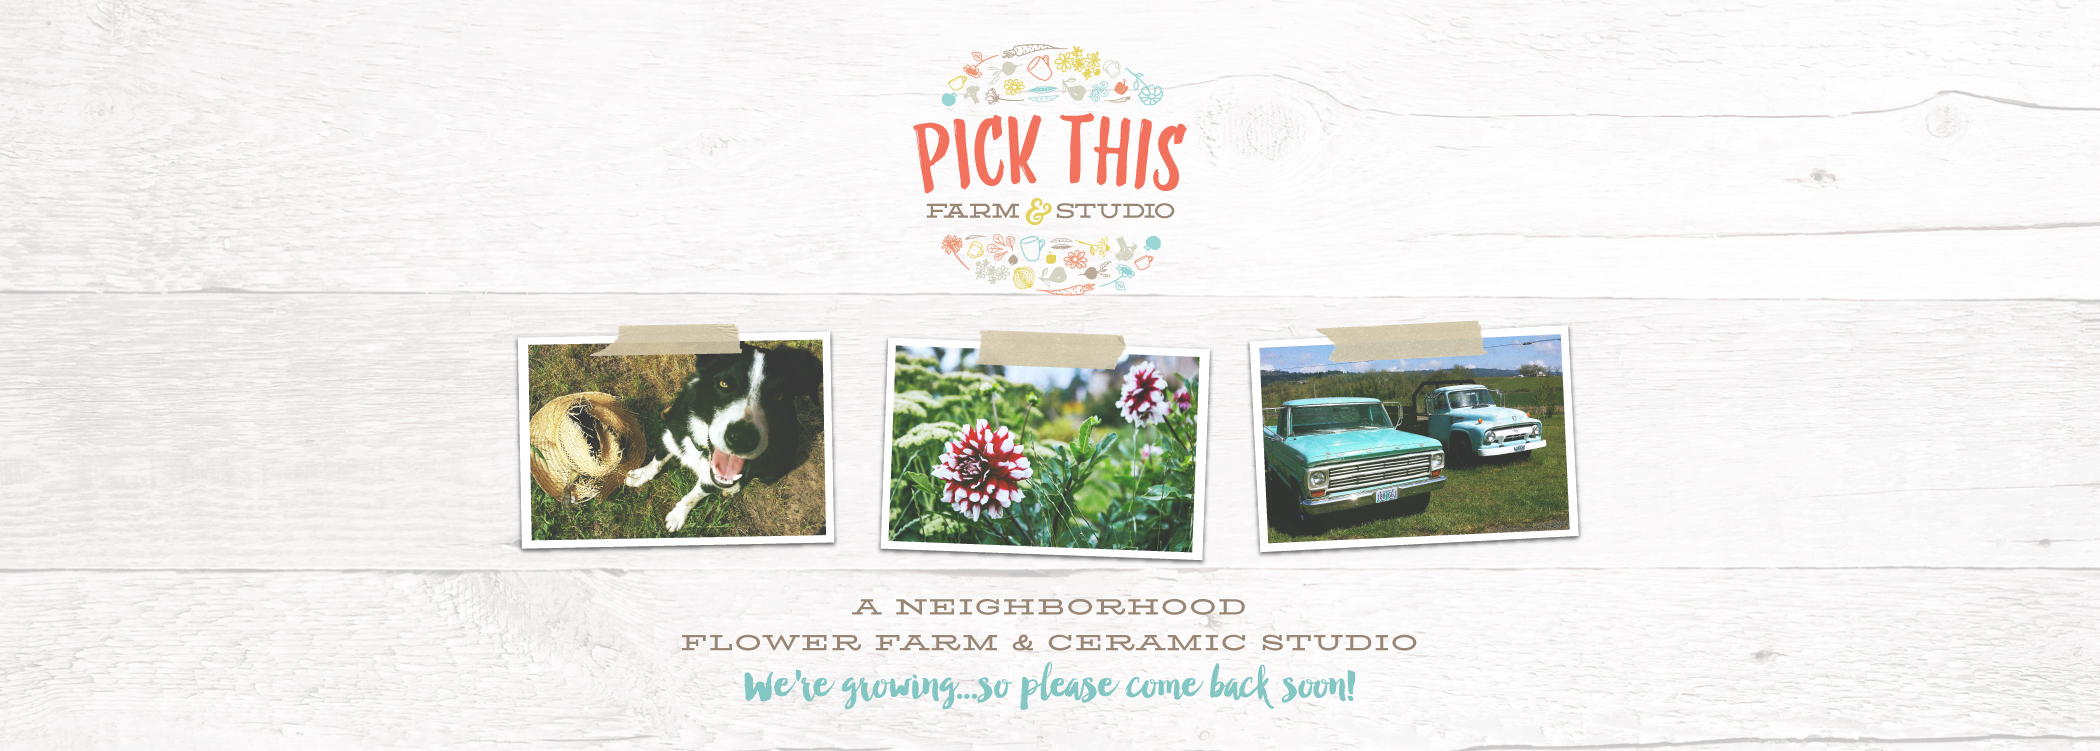 We're Growing at Pick This Farm & Studio